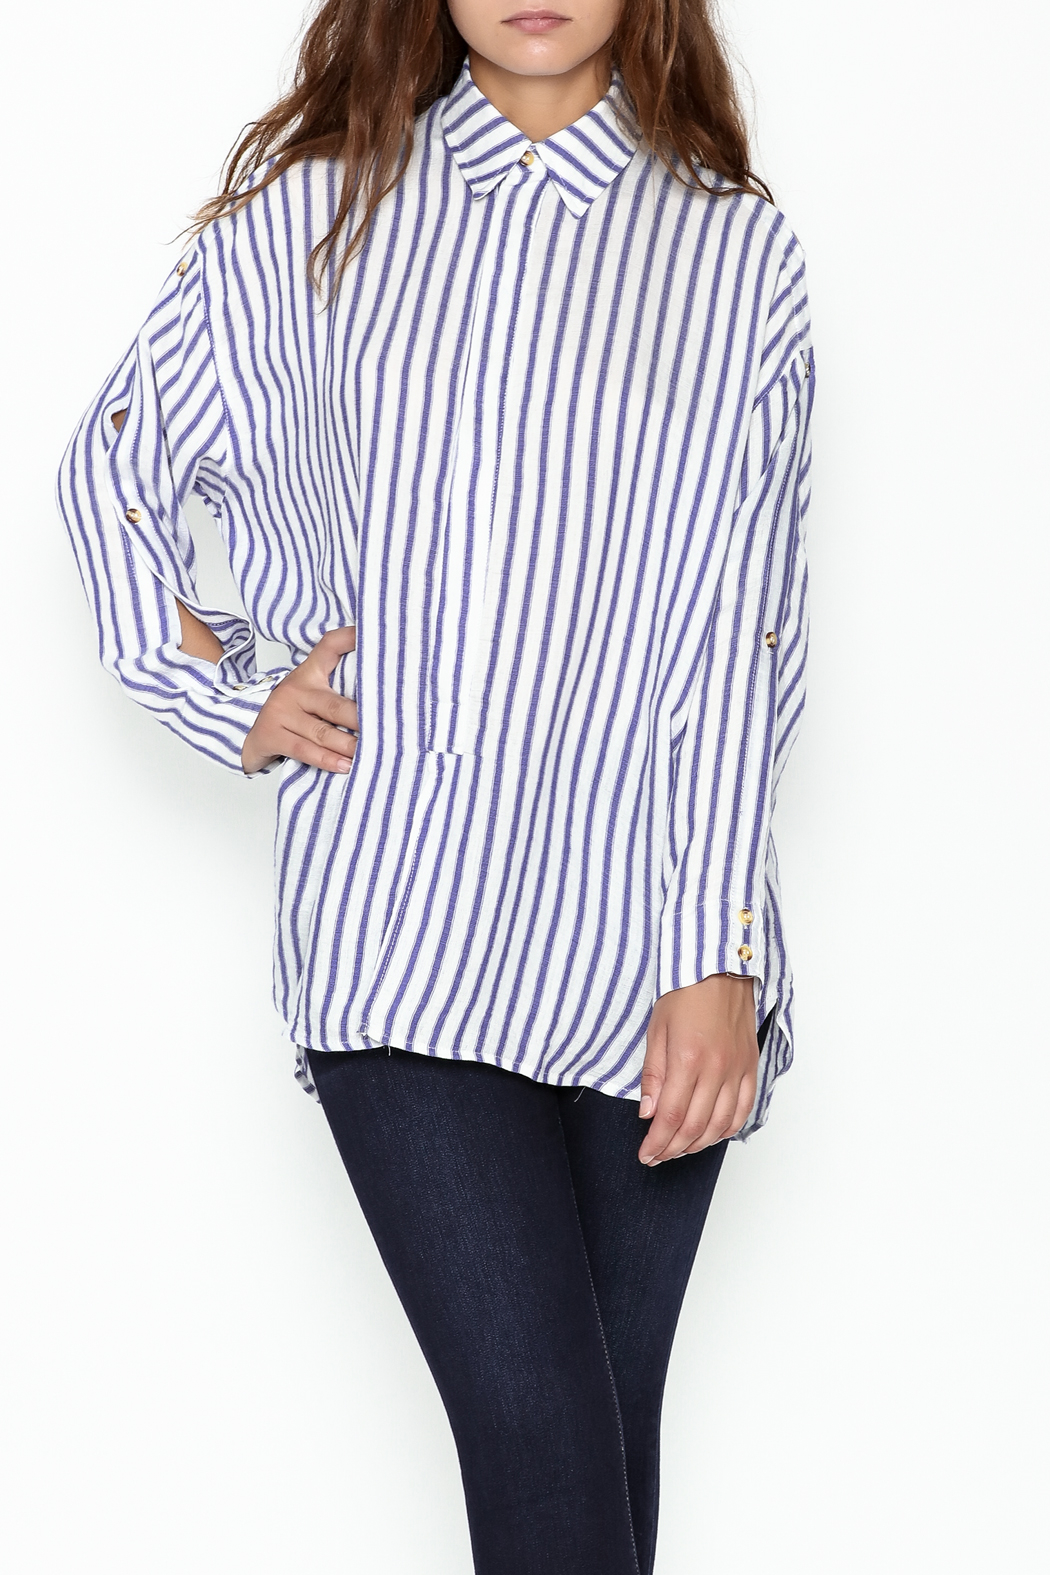 Olivaceous Boyfriend Striped Shirt - Main Image